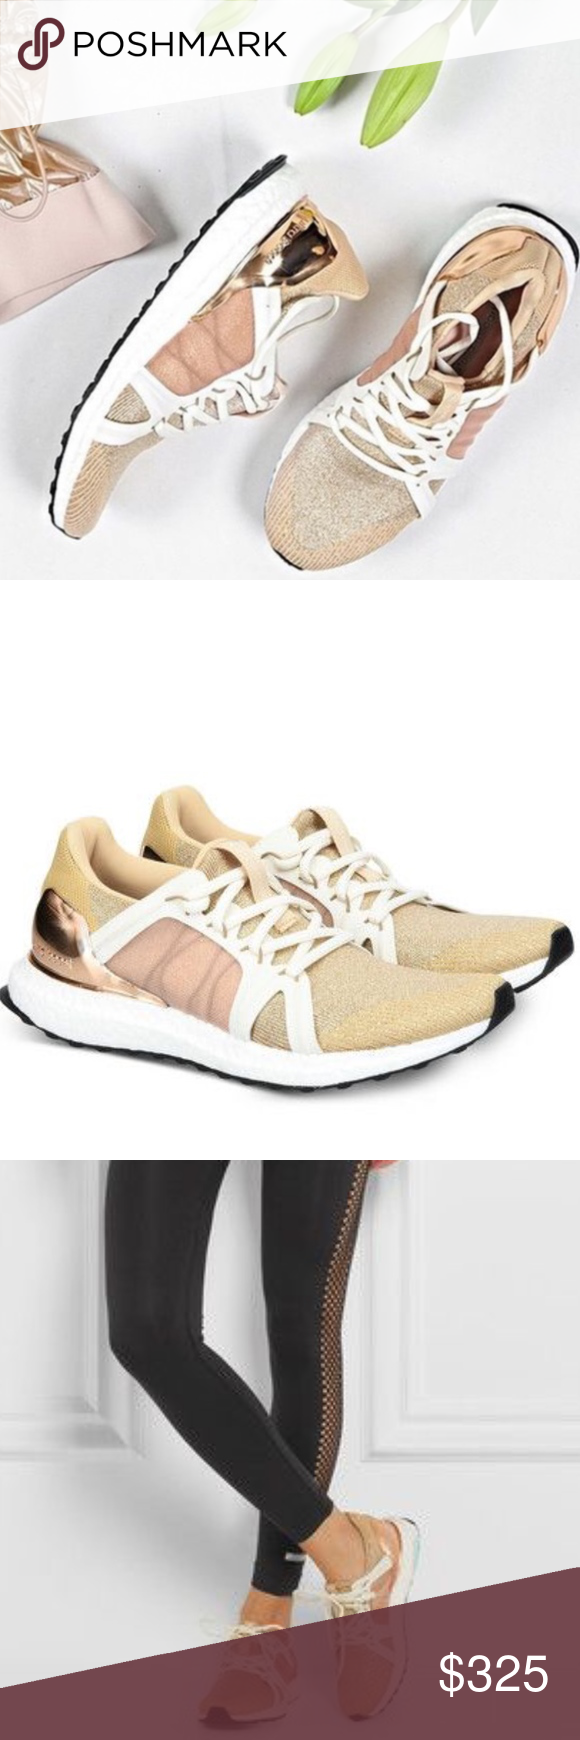 5317151eb596 EUC RARE Adidas Stella McCartney Gold Ultra Boost ROSE GOLD GOLD ULTRA  BOOSTS AMAZING CONIDTION